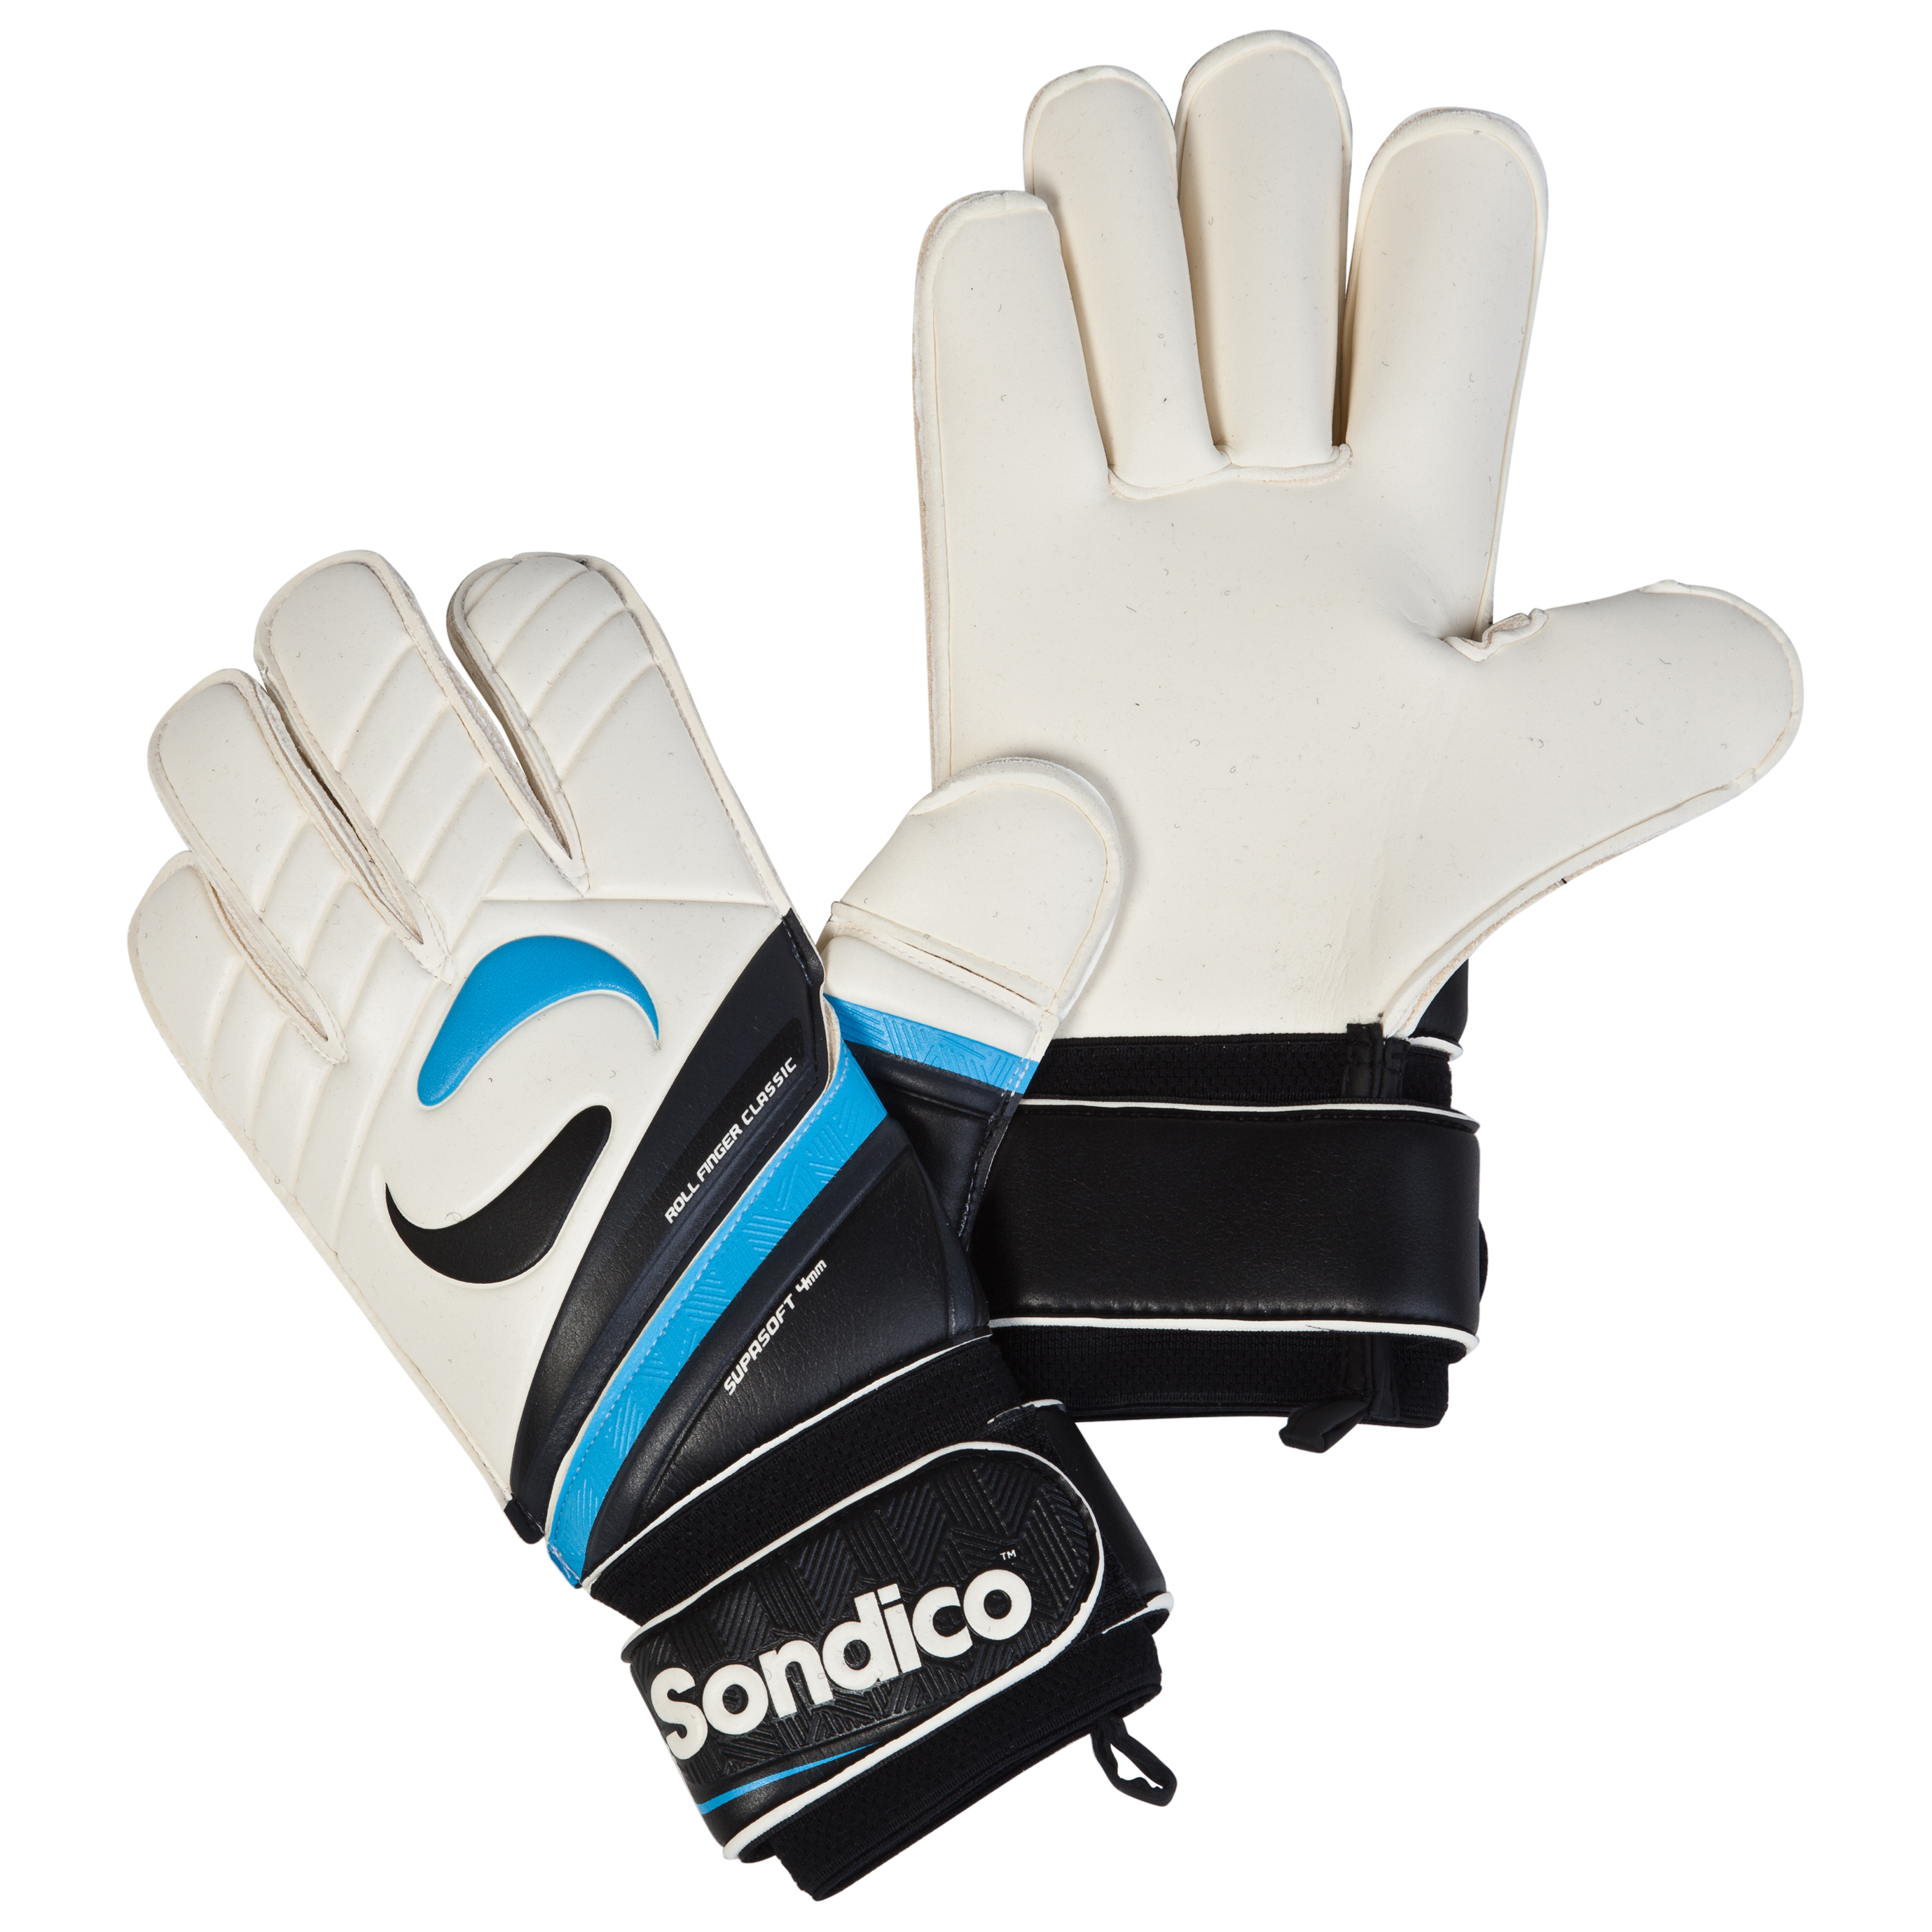 Sondico Midas Academy Classic Roll Finger Goalkeeper Gloves - Black/White/Gun Metal/Cyan